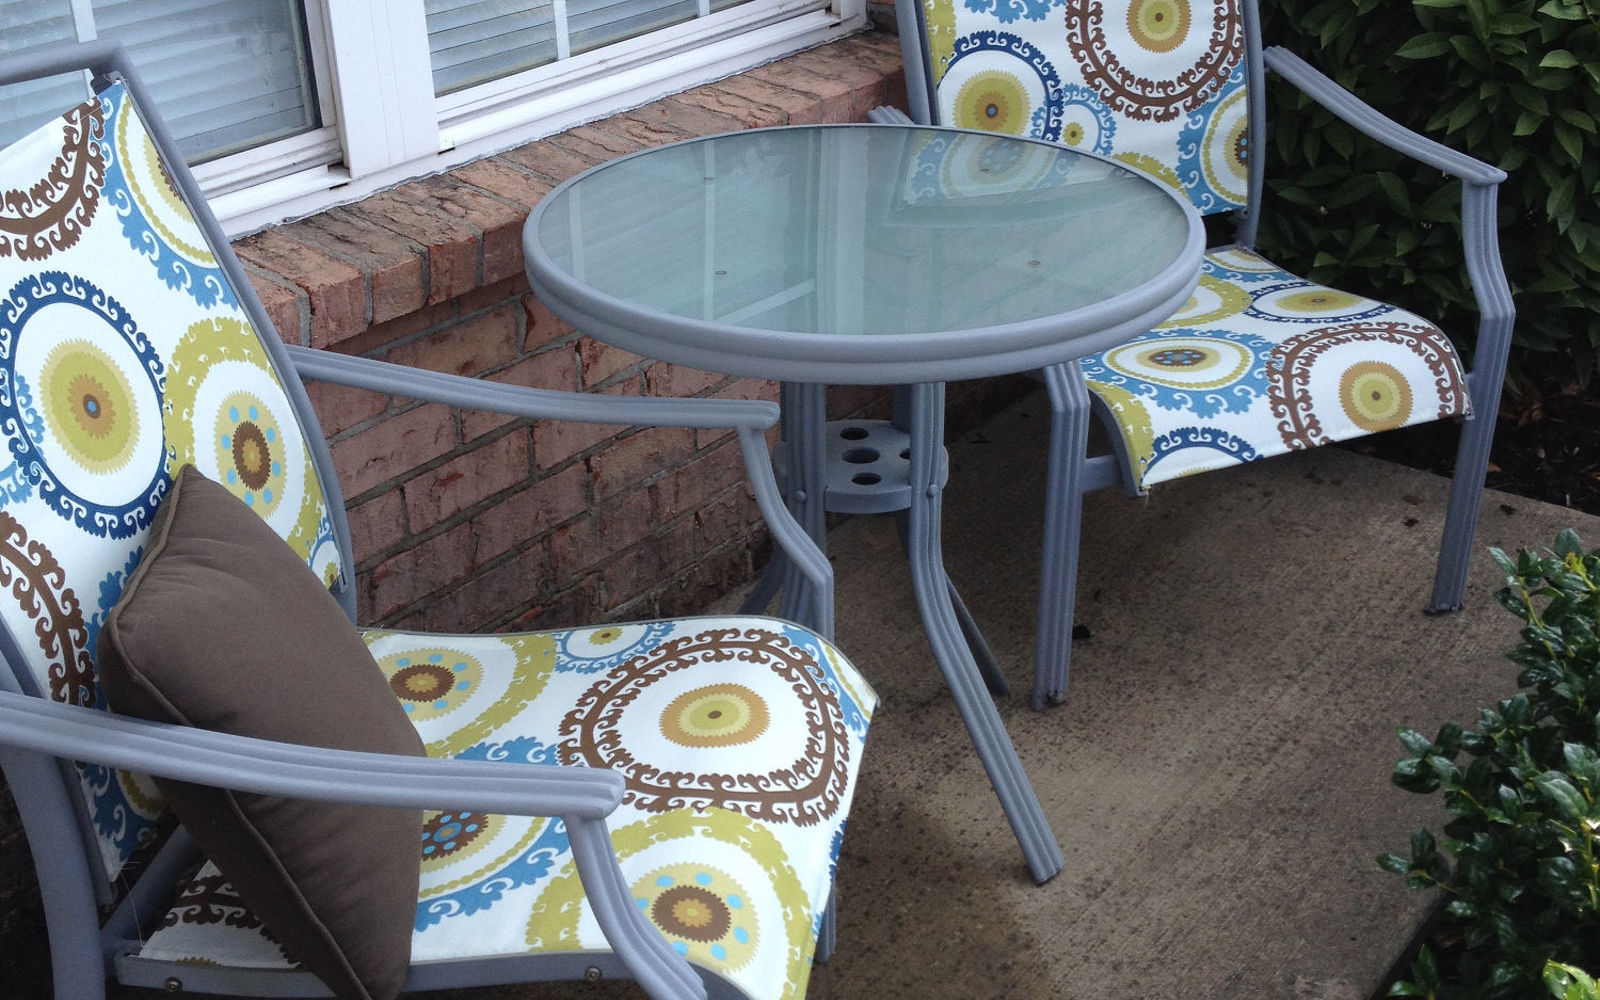 s 15 decorative ways your family can pretty up your patio, Redo A Patio Set For 25